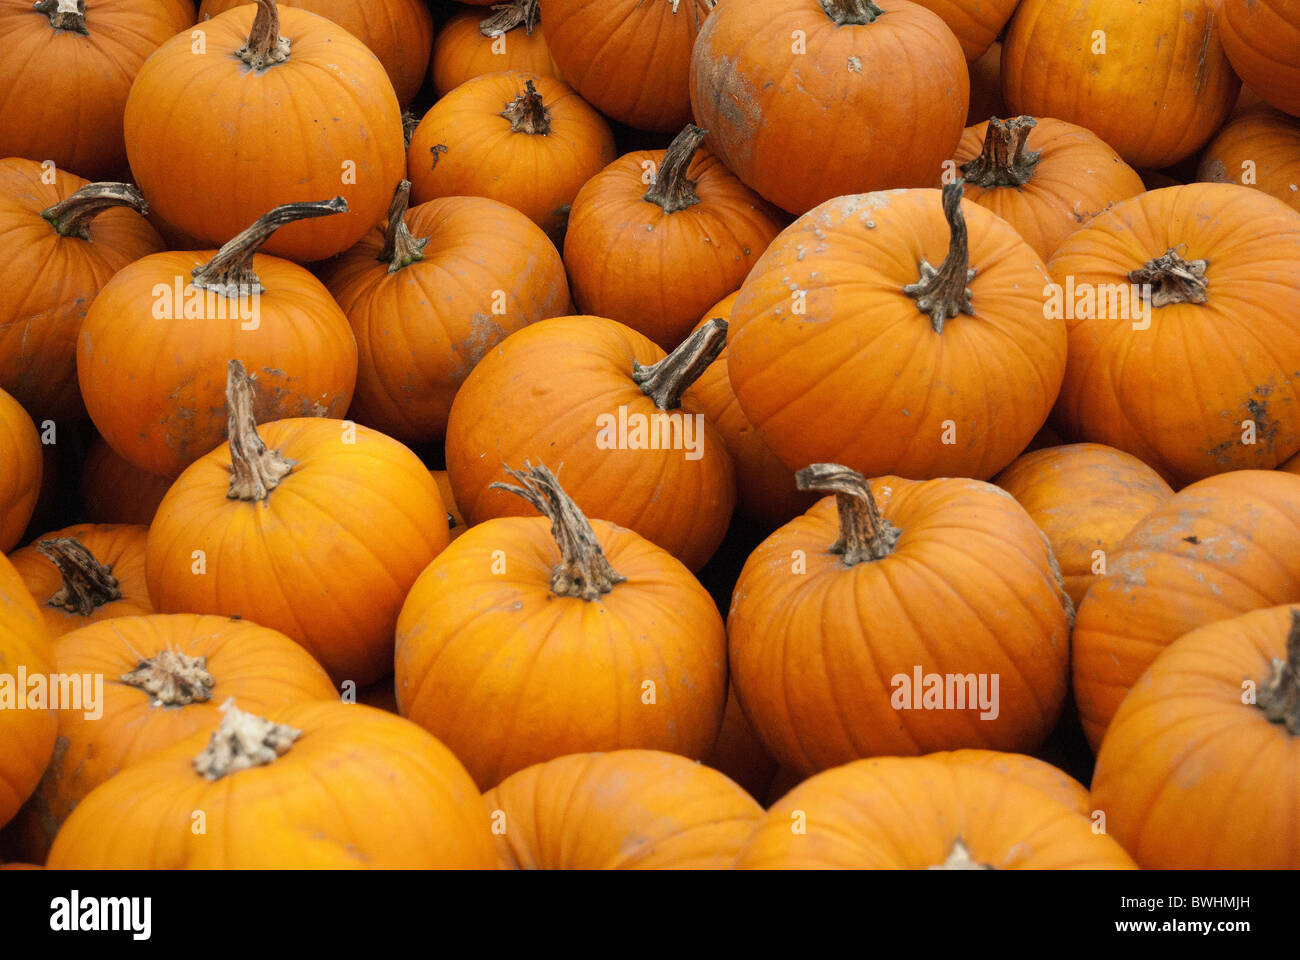 Pumpkins of all shapes and sizes - Stock Image